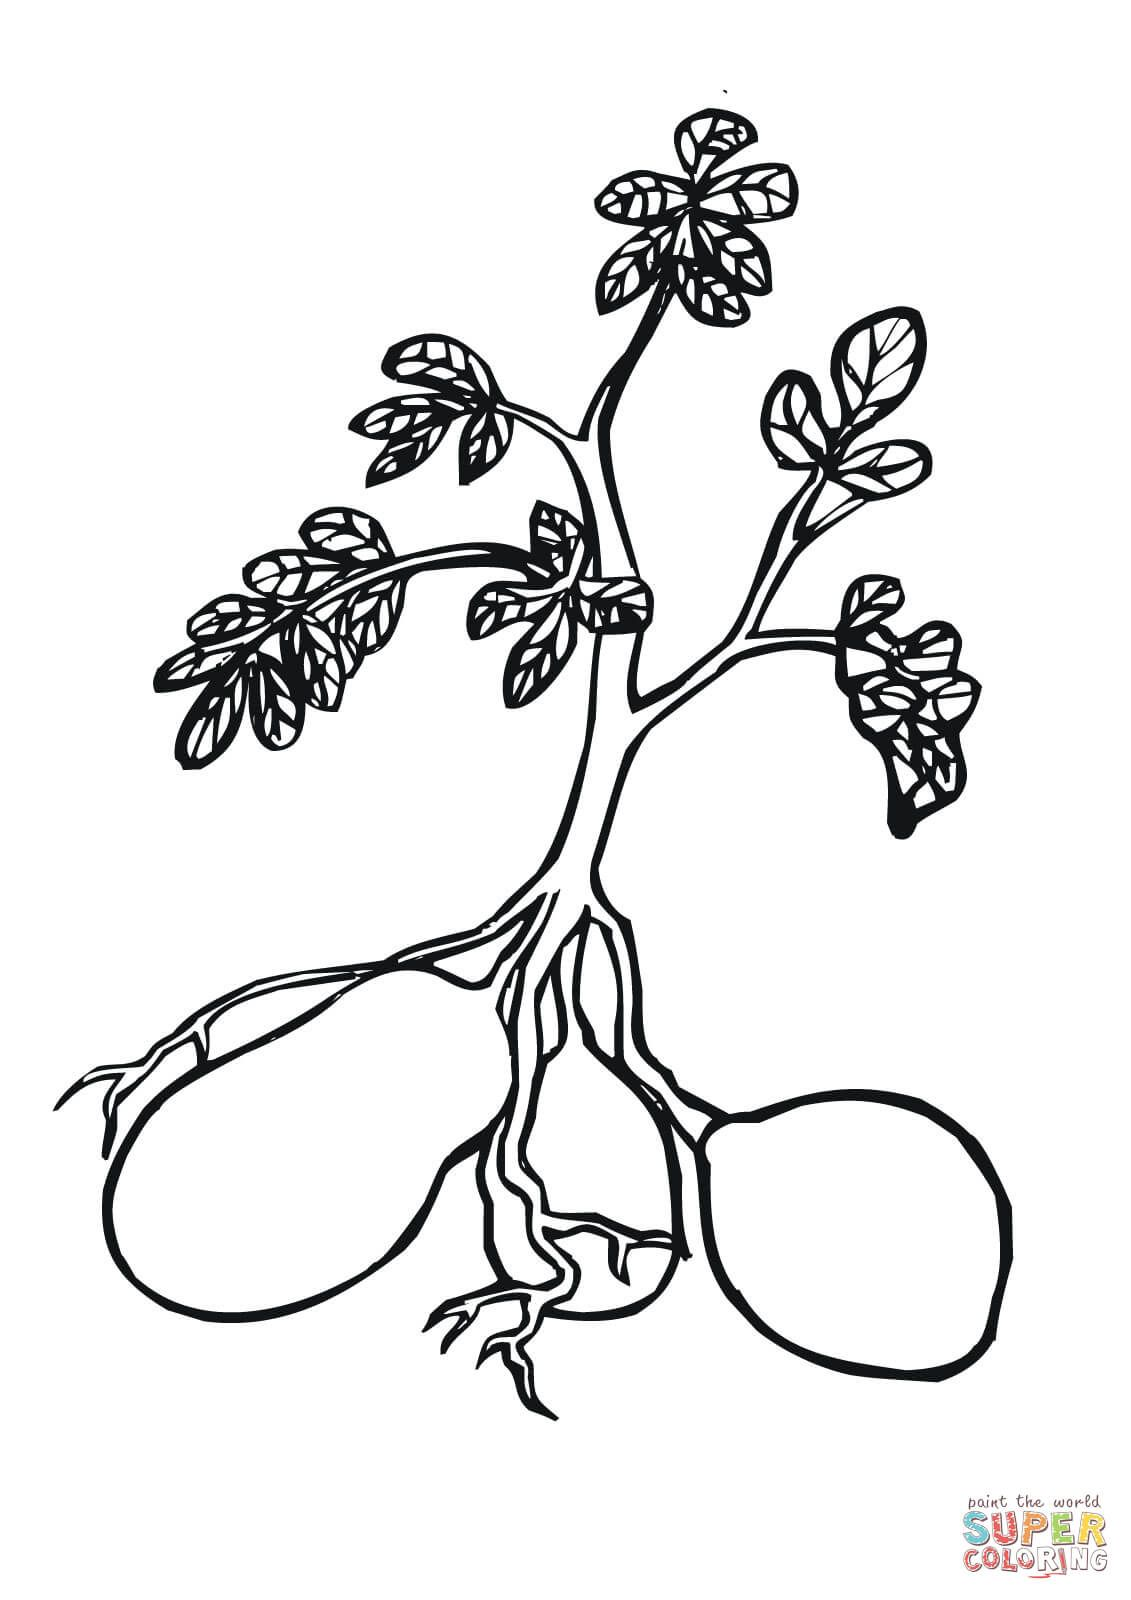 Potato Plant Coloring Page Free Printable Coloring Pages Plant Coloring Pages Zombie Coloring Pages Coloring Pages